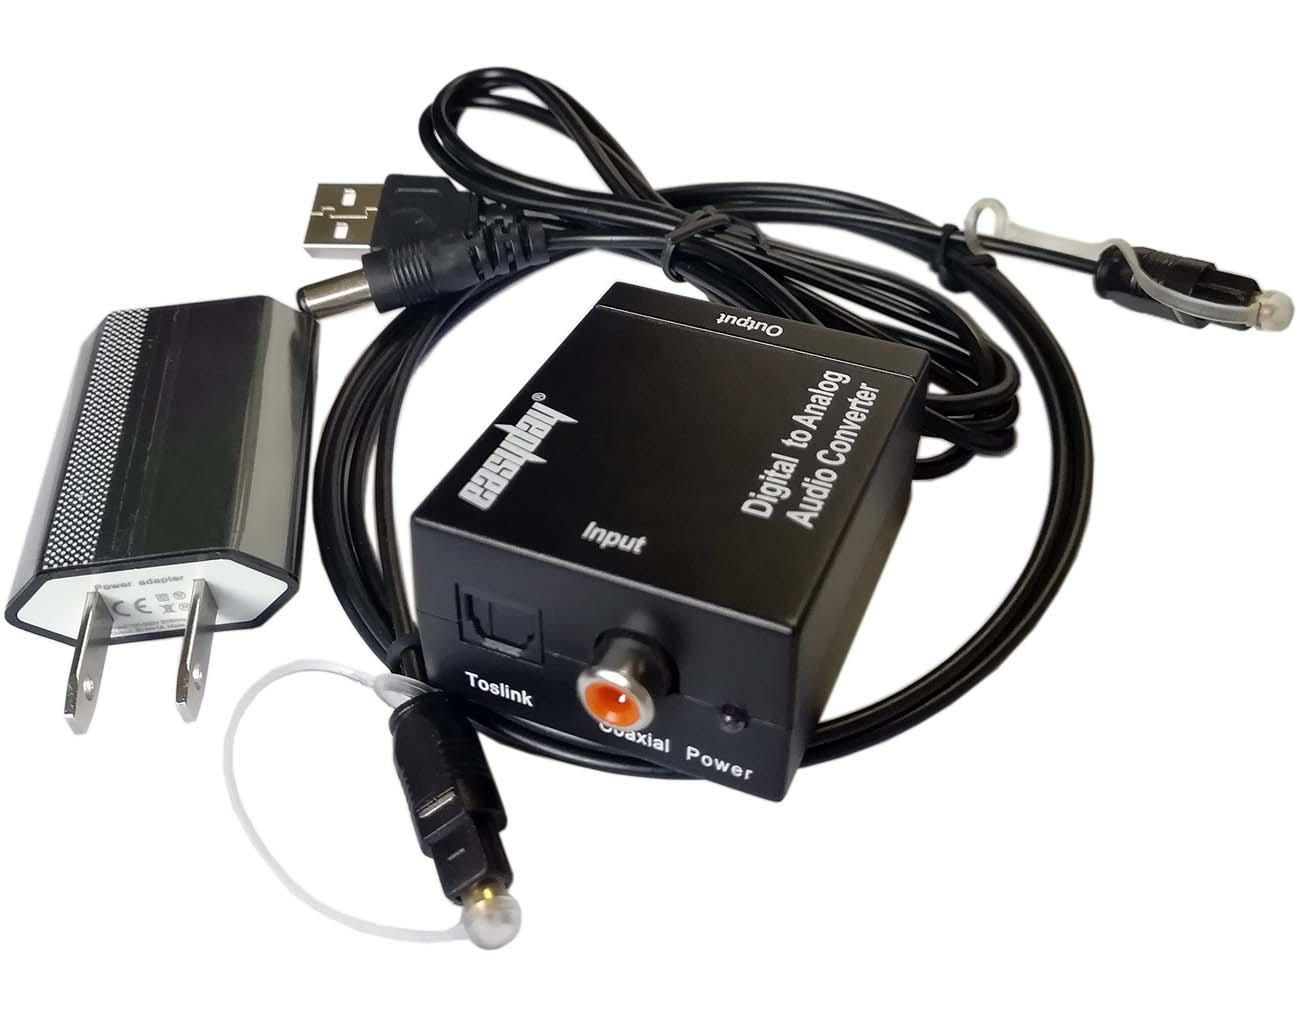 Dac For Sale Digital Analog Converter Prices Brands Specs In Coaxial To Rca Audio Toslink Adapter L R 05 M Fiber